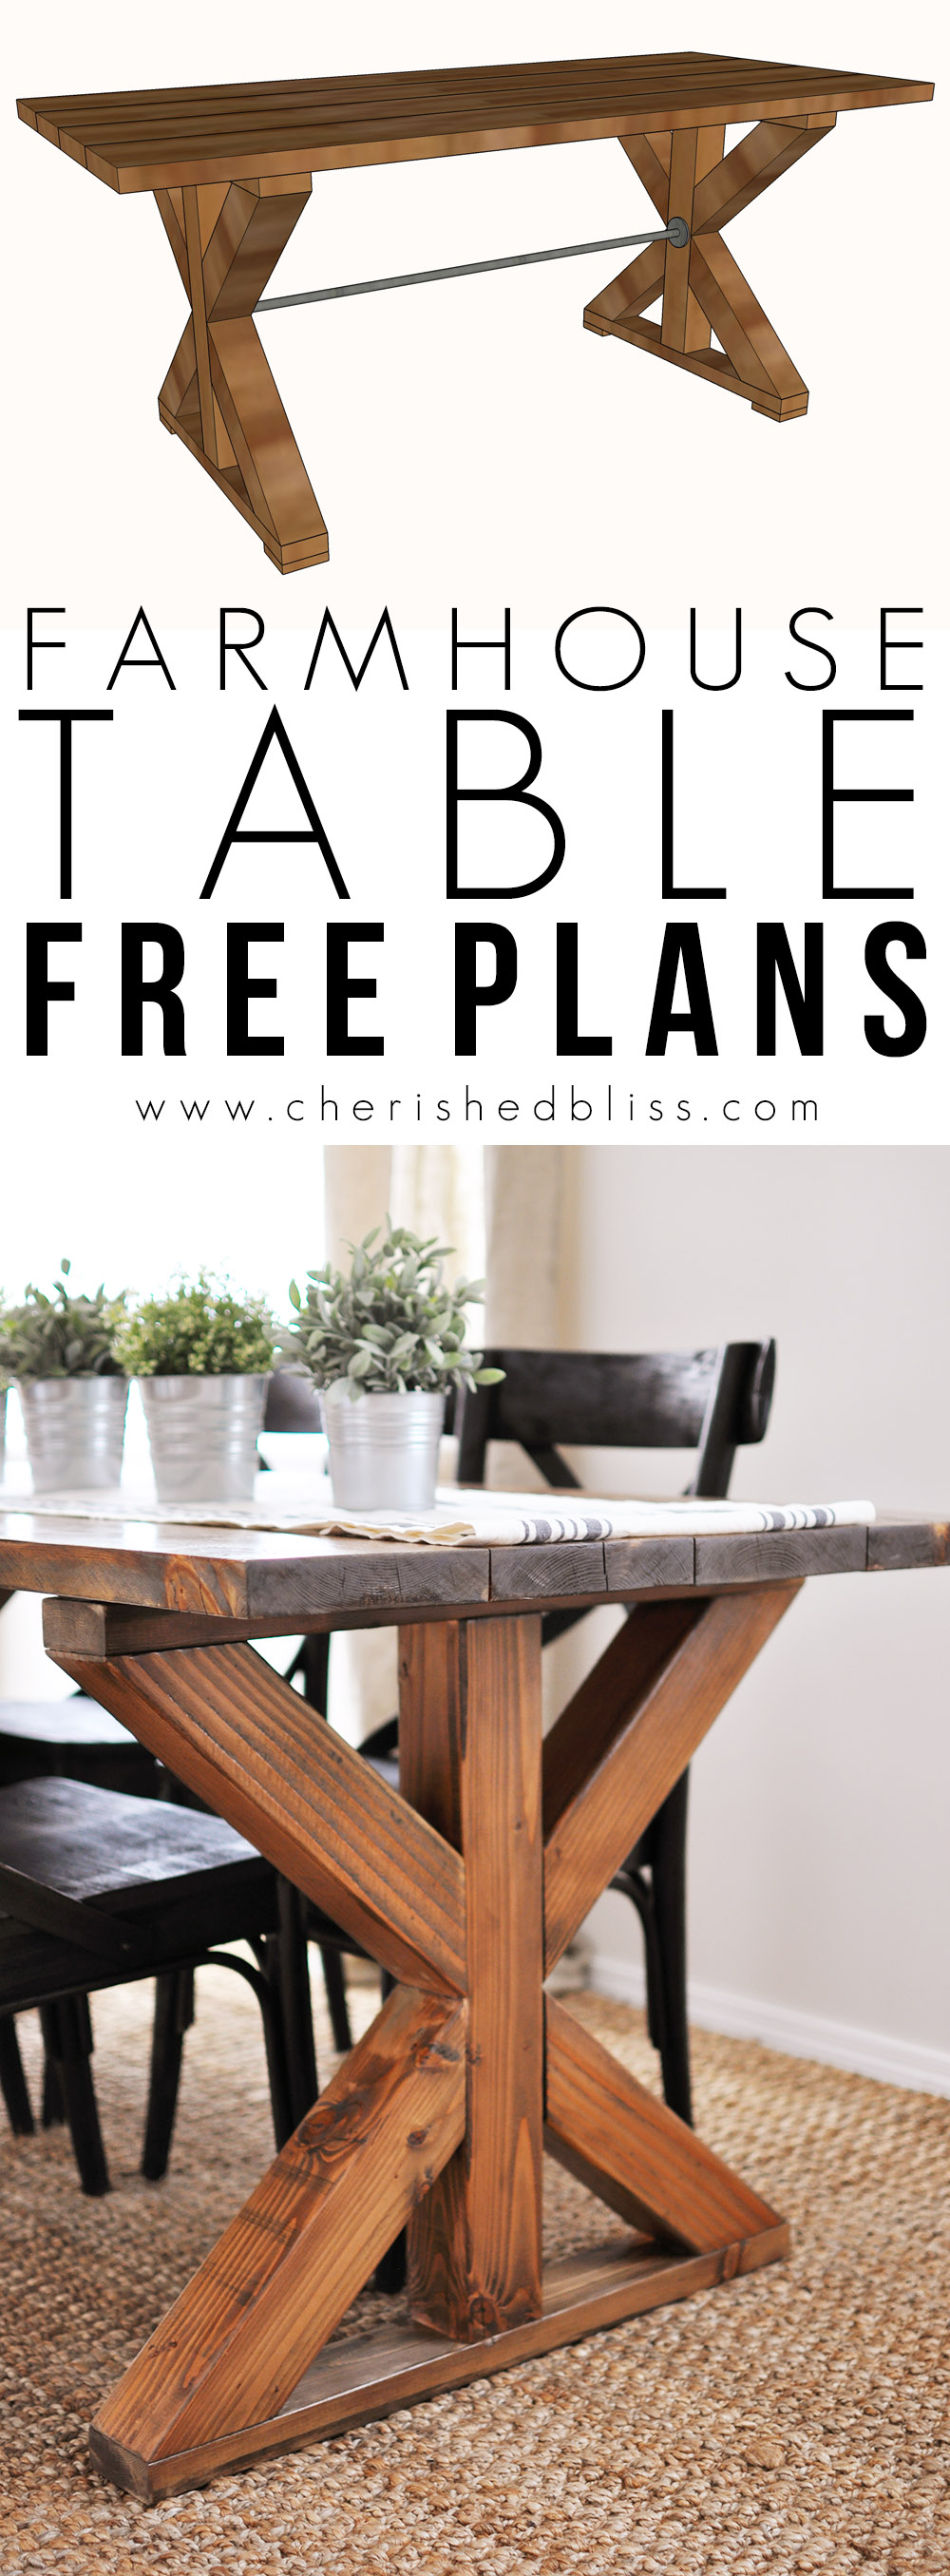 X Base Trestle Farm Table Build Plans - Cherished Bliss